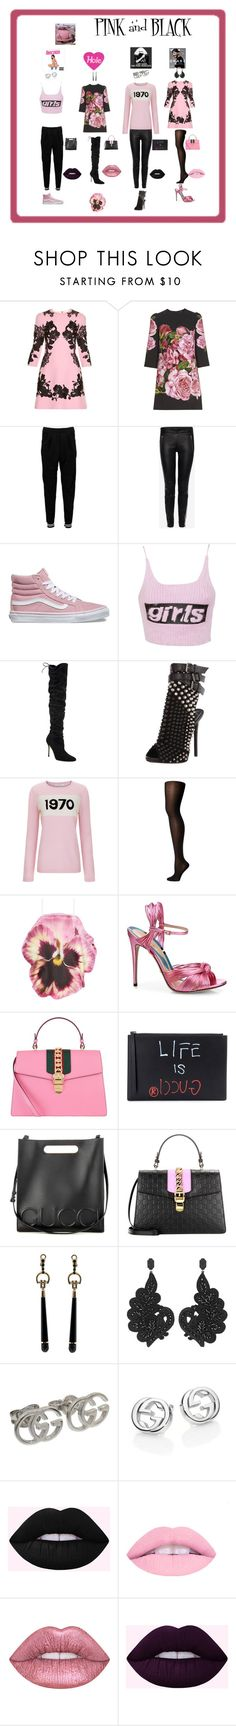 """""""PINK AND BLACK"""" by giagiagia ❤ liked on Polyvore featuring Dolce&Gabbana, Boohoo, Alexander McQueen, Vans, Alexander Wang, Manolo Blahnik, Giuseppe Zanotti, Bella Freud, Wolford and Christopher Kane"""